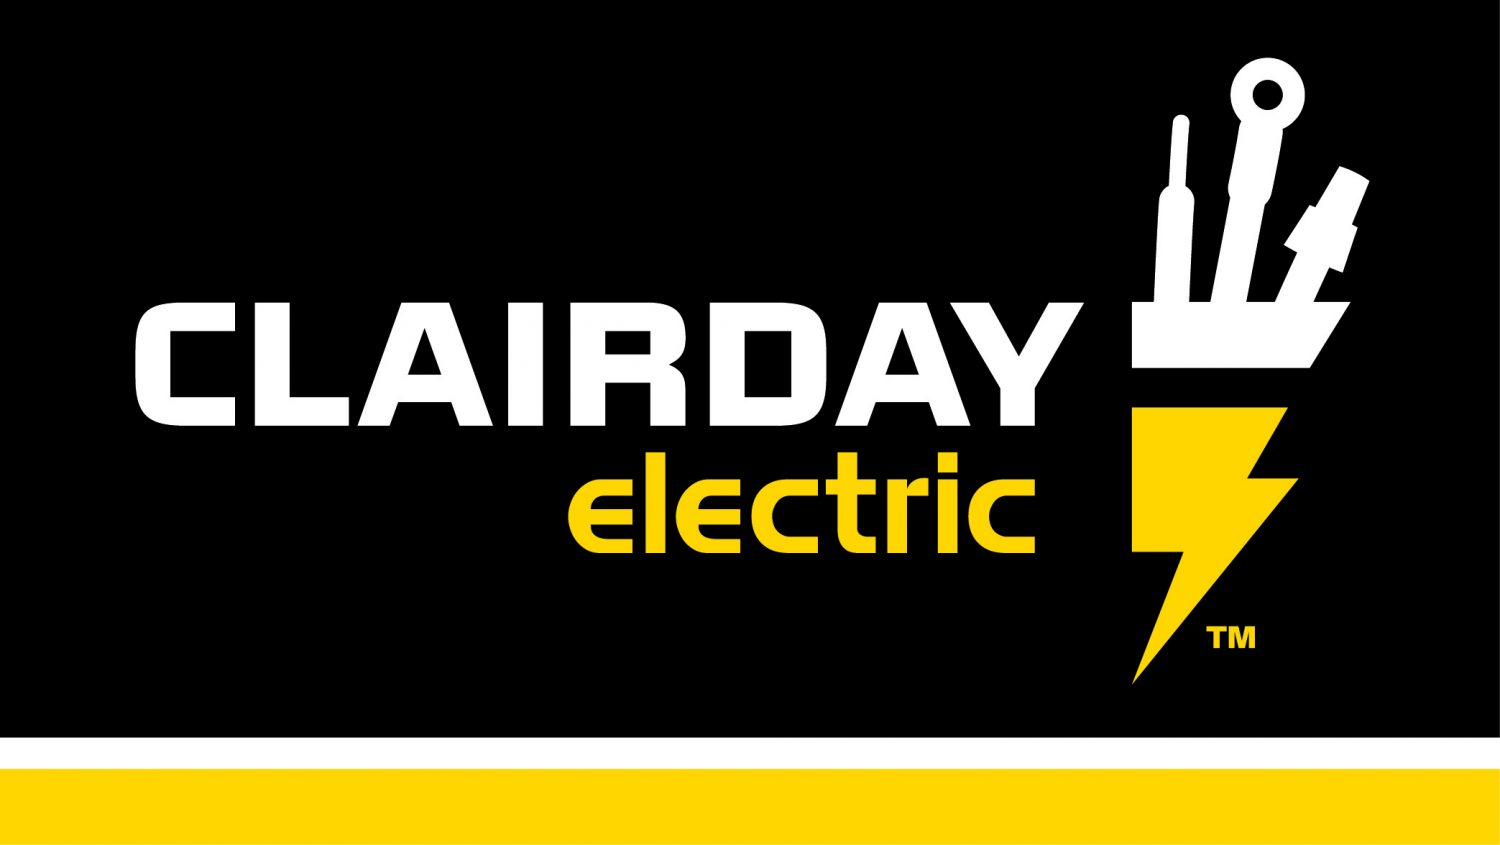 Clairday Electric